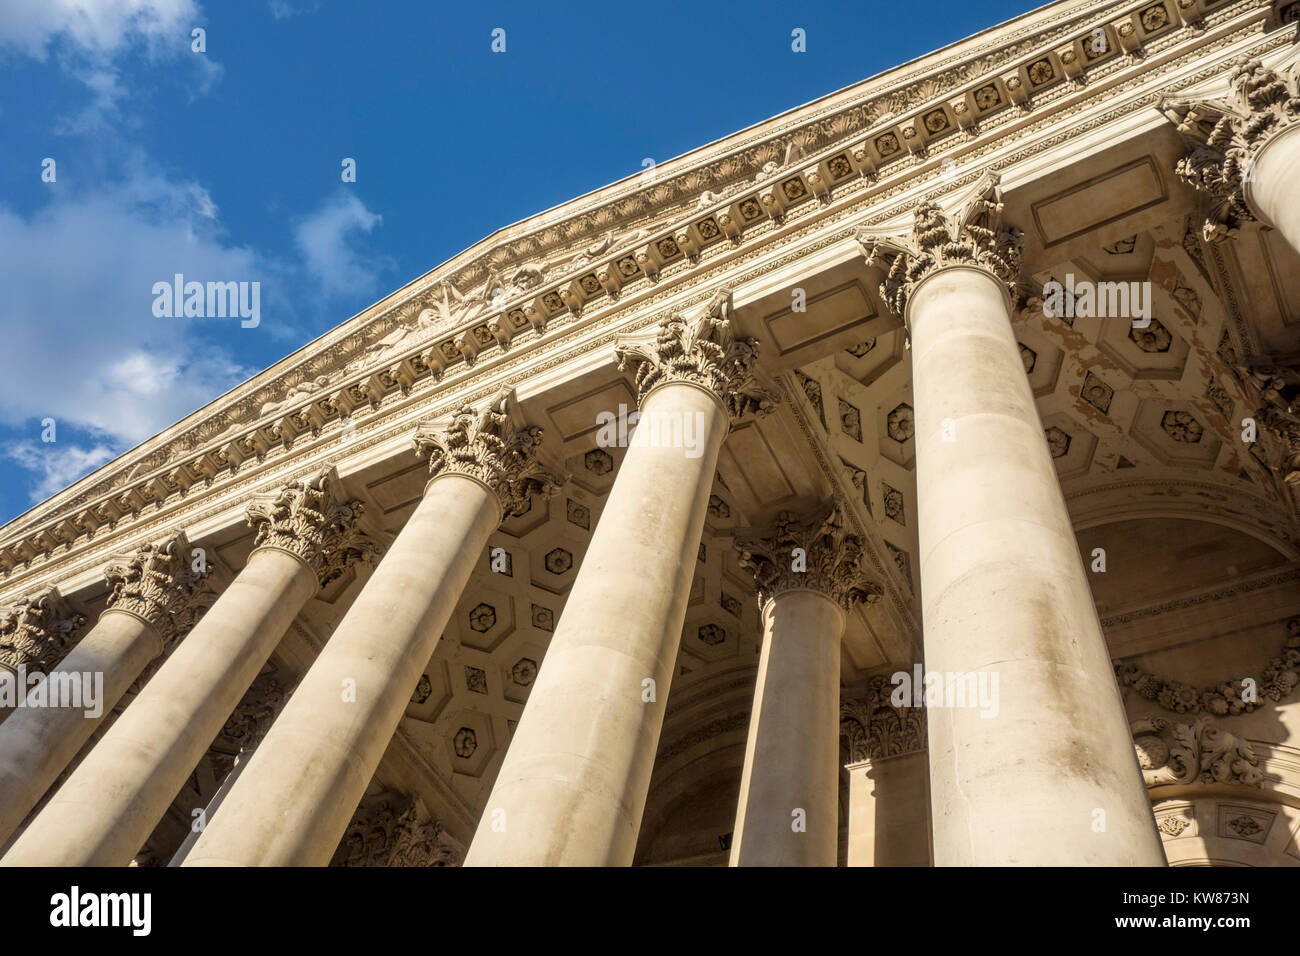 Neo-classical columns at Royal Exchange building, City of London, UK - Stock Image